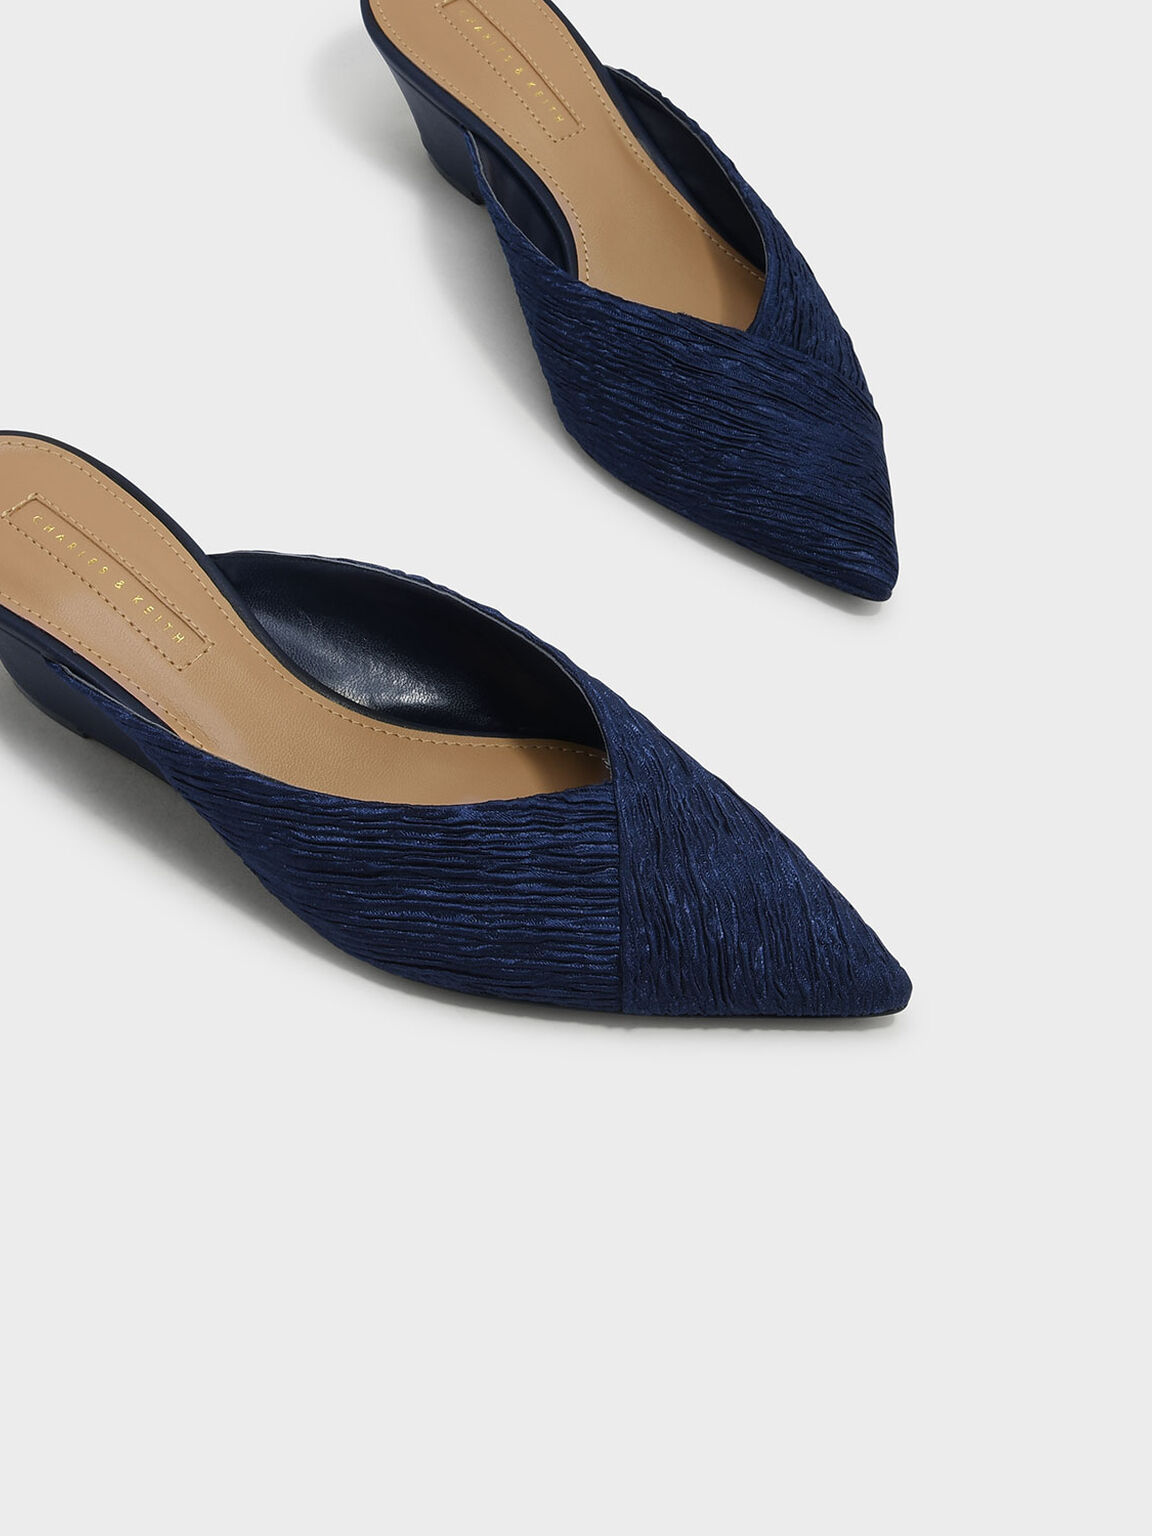 V Wedge Mules, Navy, hi-res